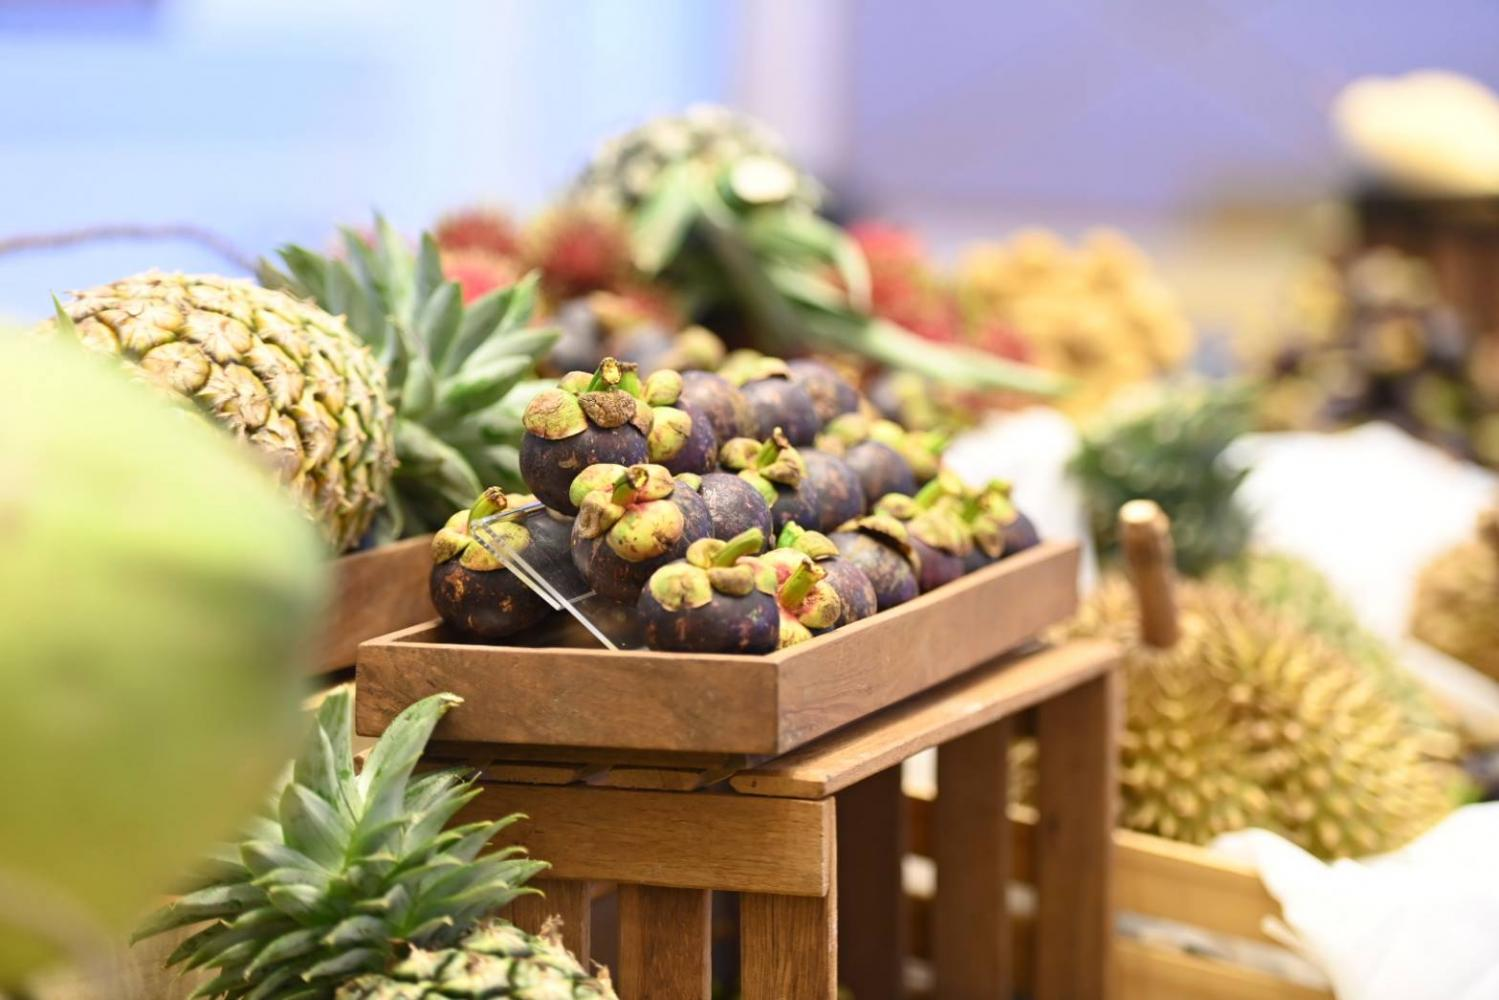 Thailand's frozen and processed fruit exports amounted to 131 billion baht in the first seven months this year.